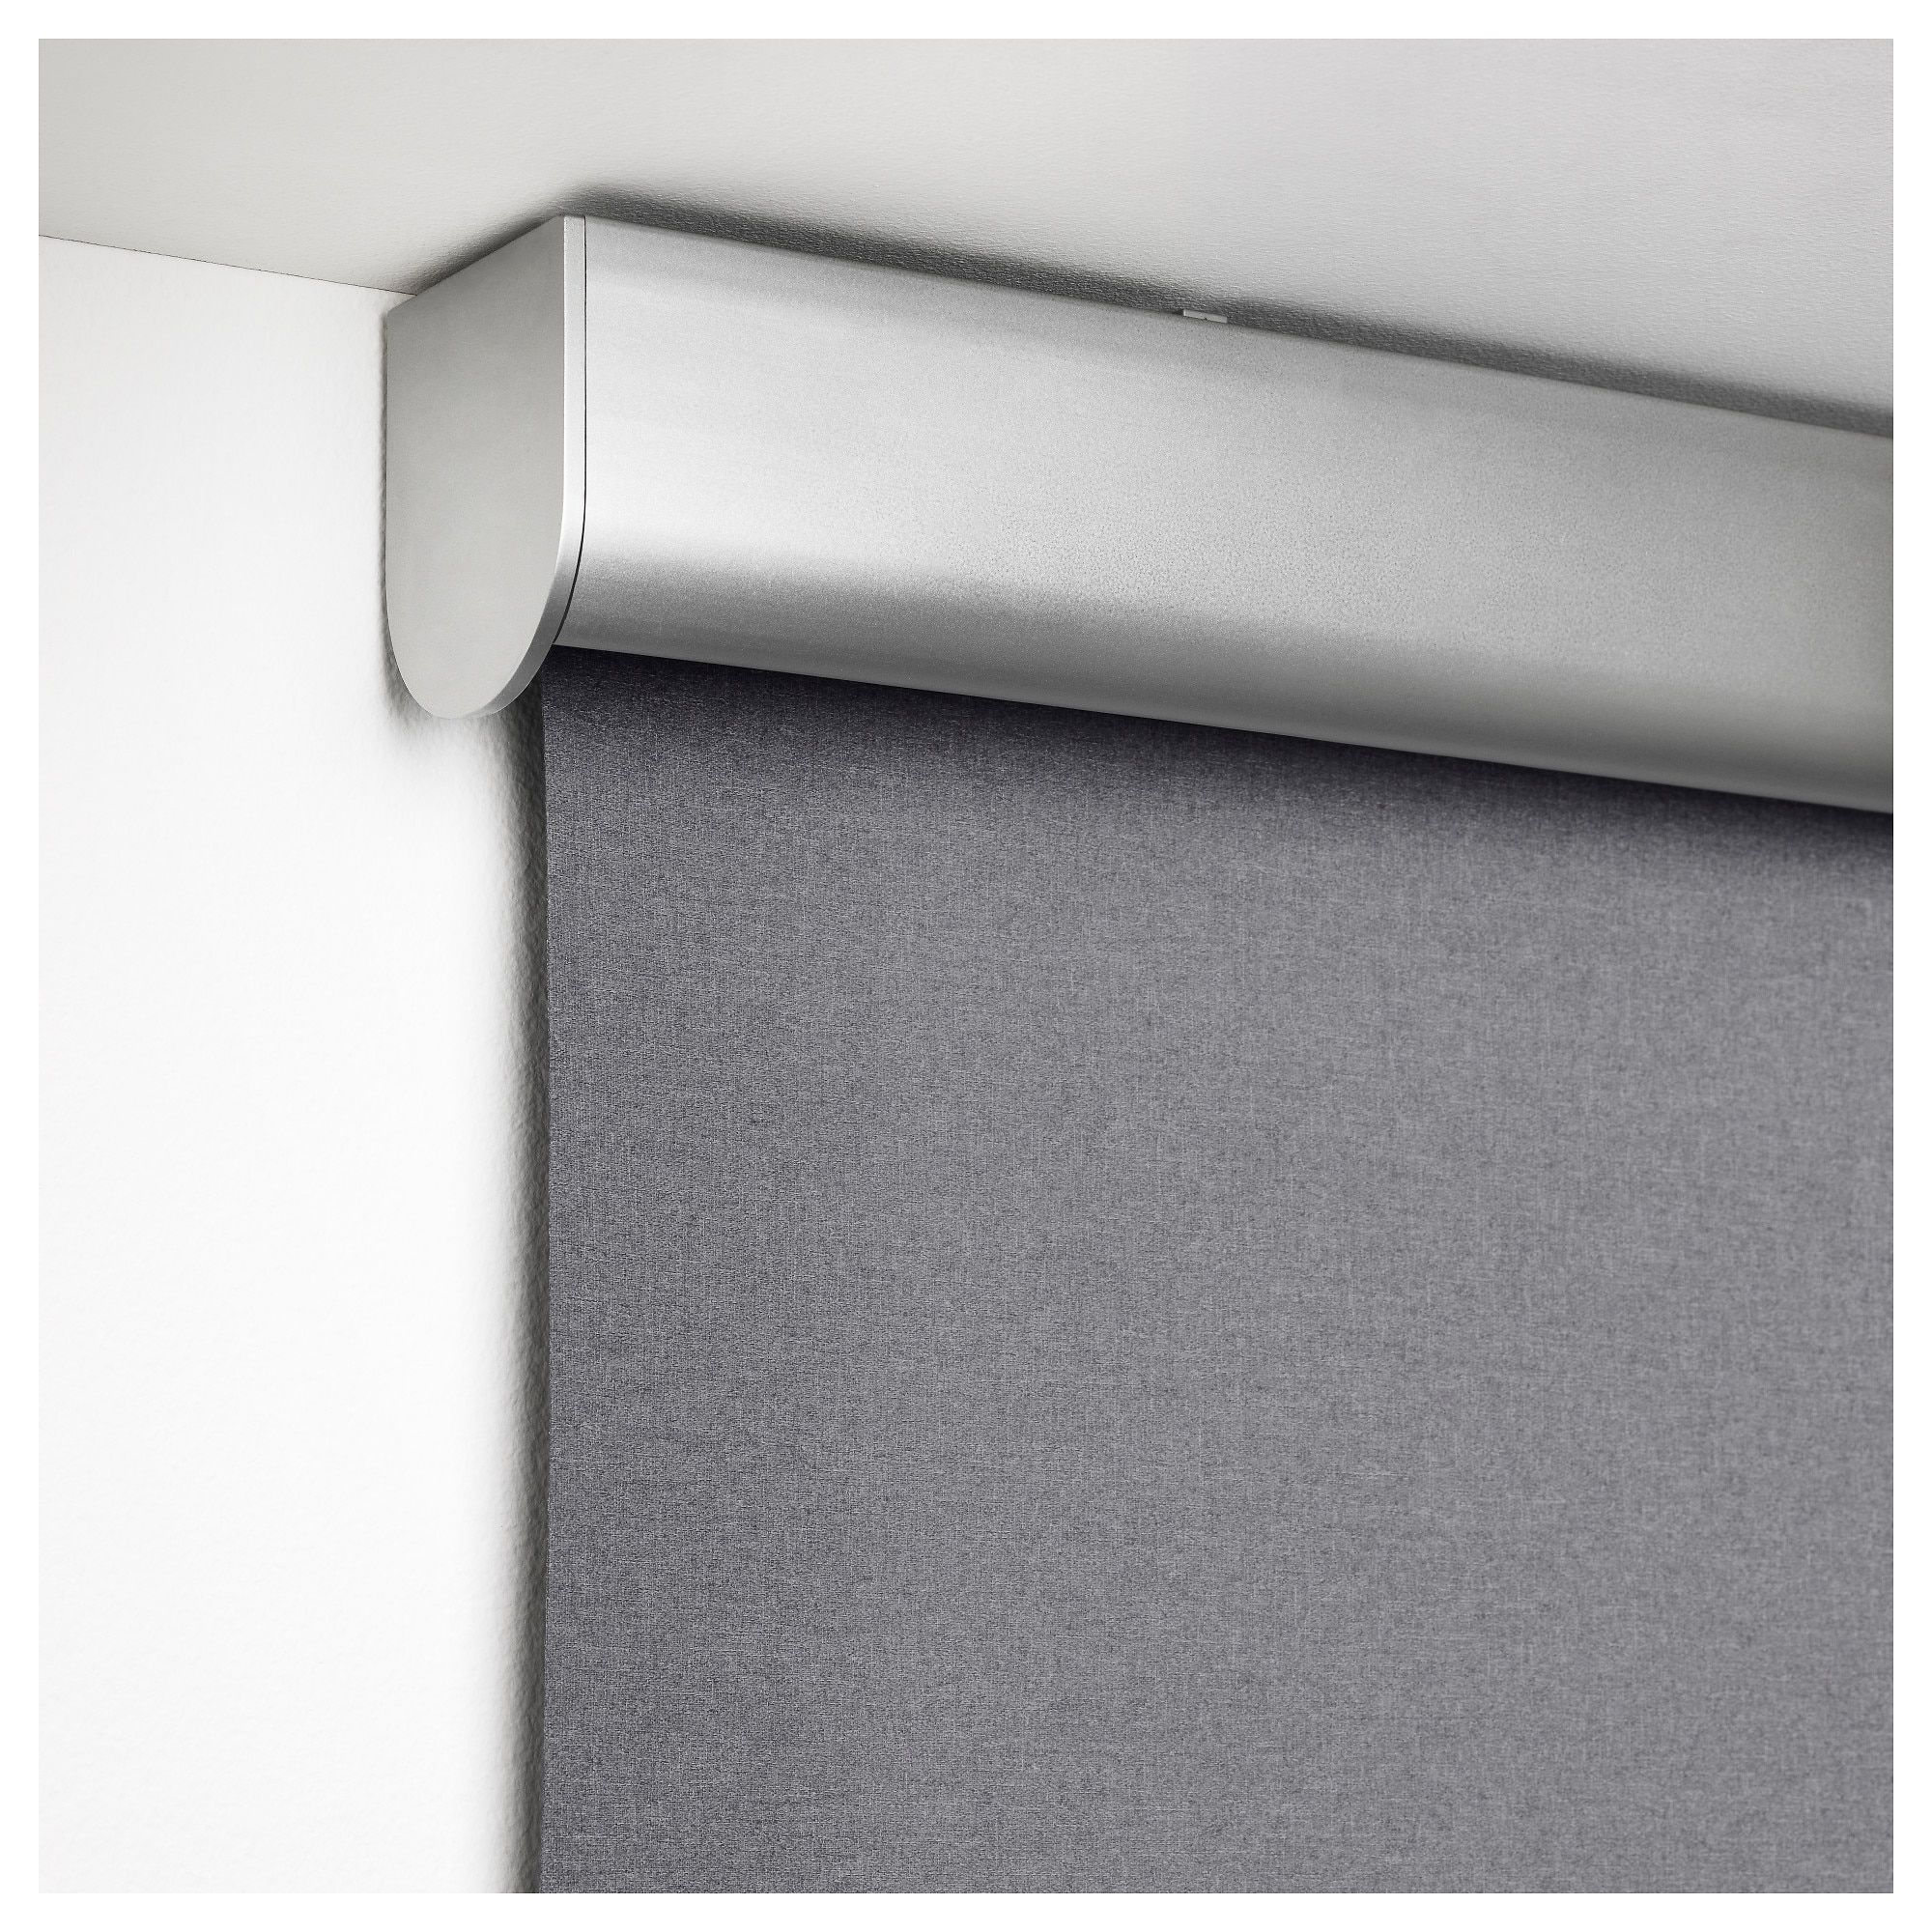 Tretur Blackout Roller Blind Light Gray 32x76 81 3x195 Cm